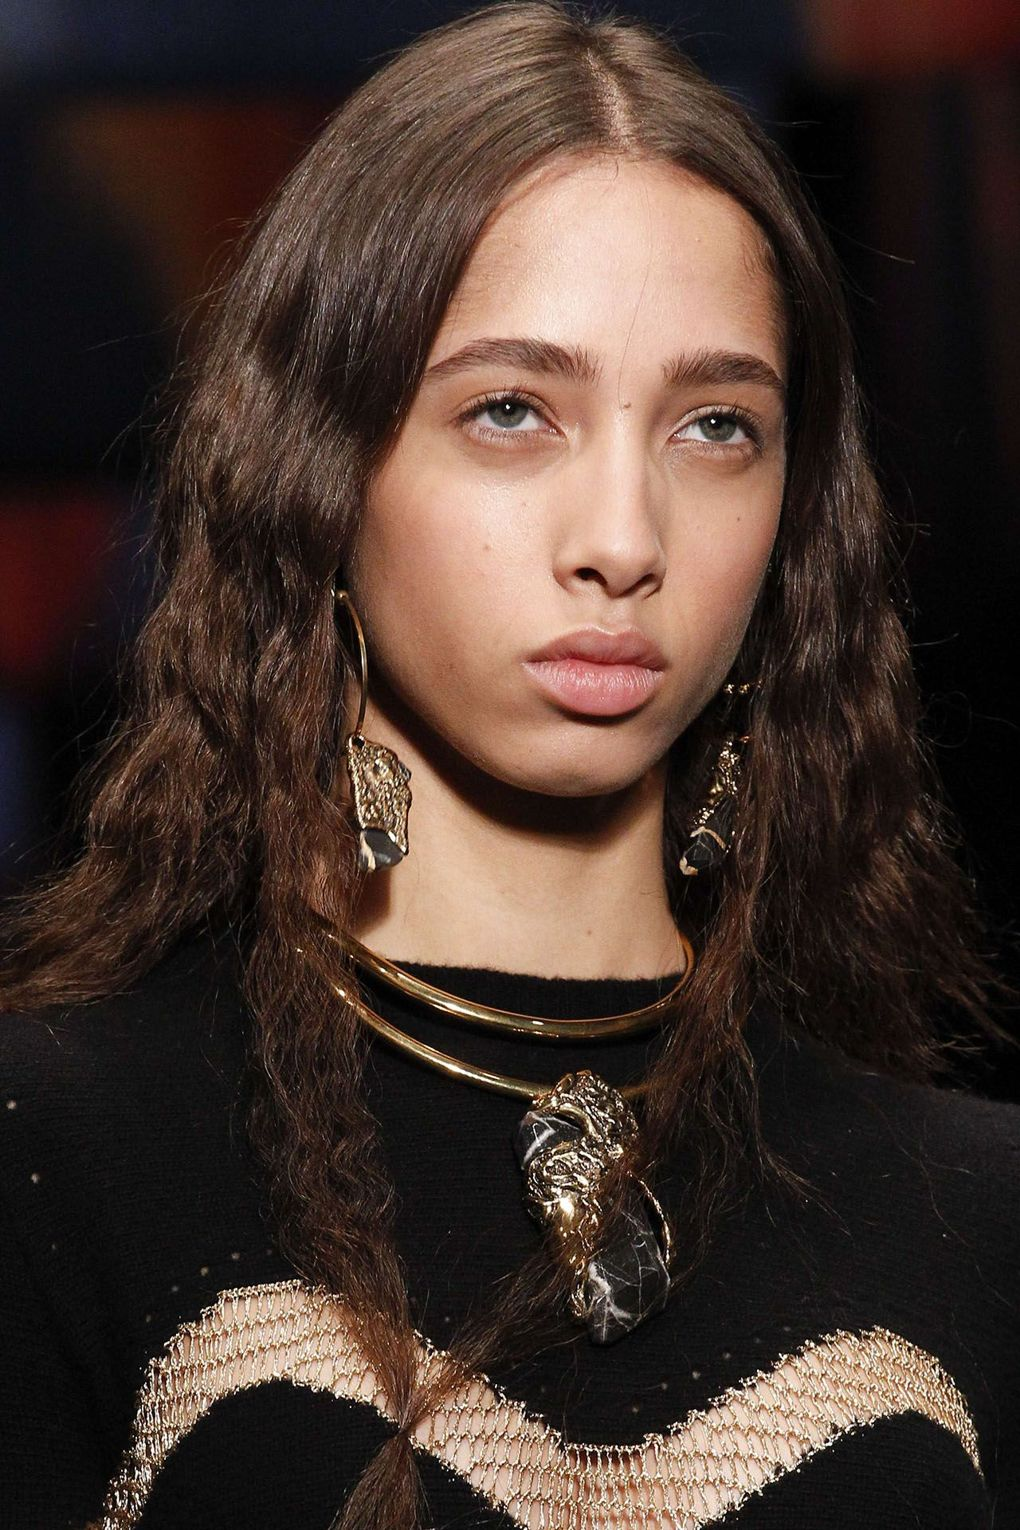 The City: Paris The Show: Alexander McQueen The Look: Crimped hair